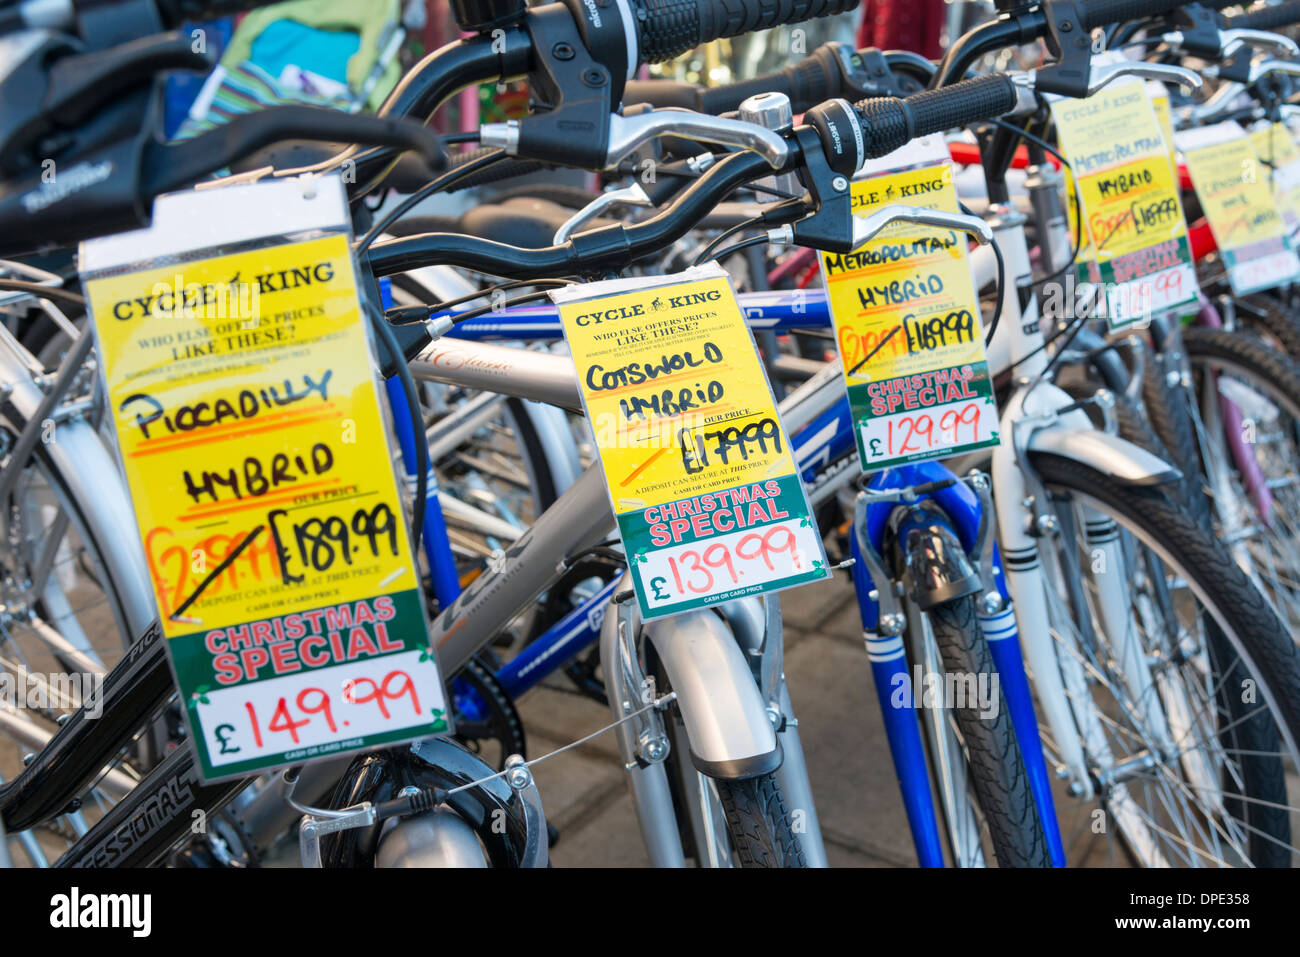 Bike Shop Sale Bicycles Lined Up For Sale Outside A Bike Shop In Cambridge Uk